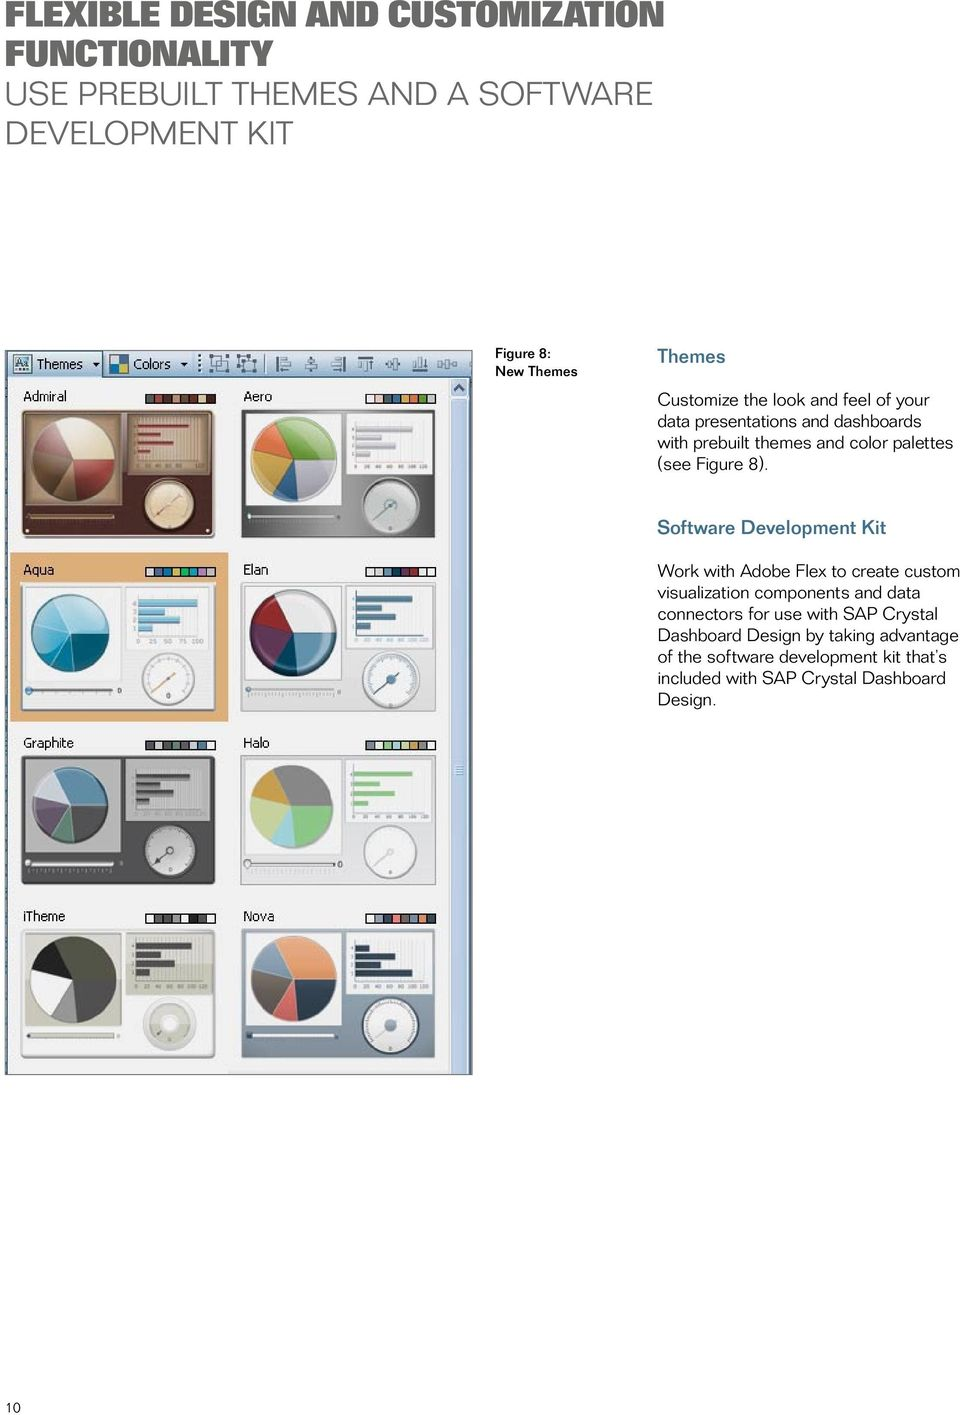 Software Development Kit Work with Adobe Flex to create custom visualization components and data connectors for use with SAP